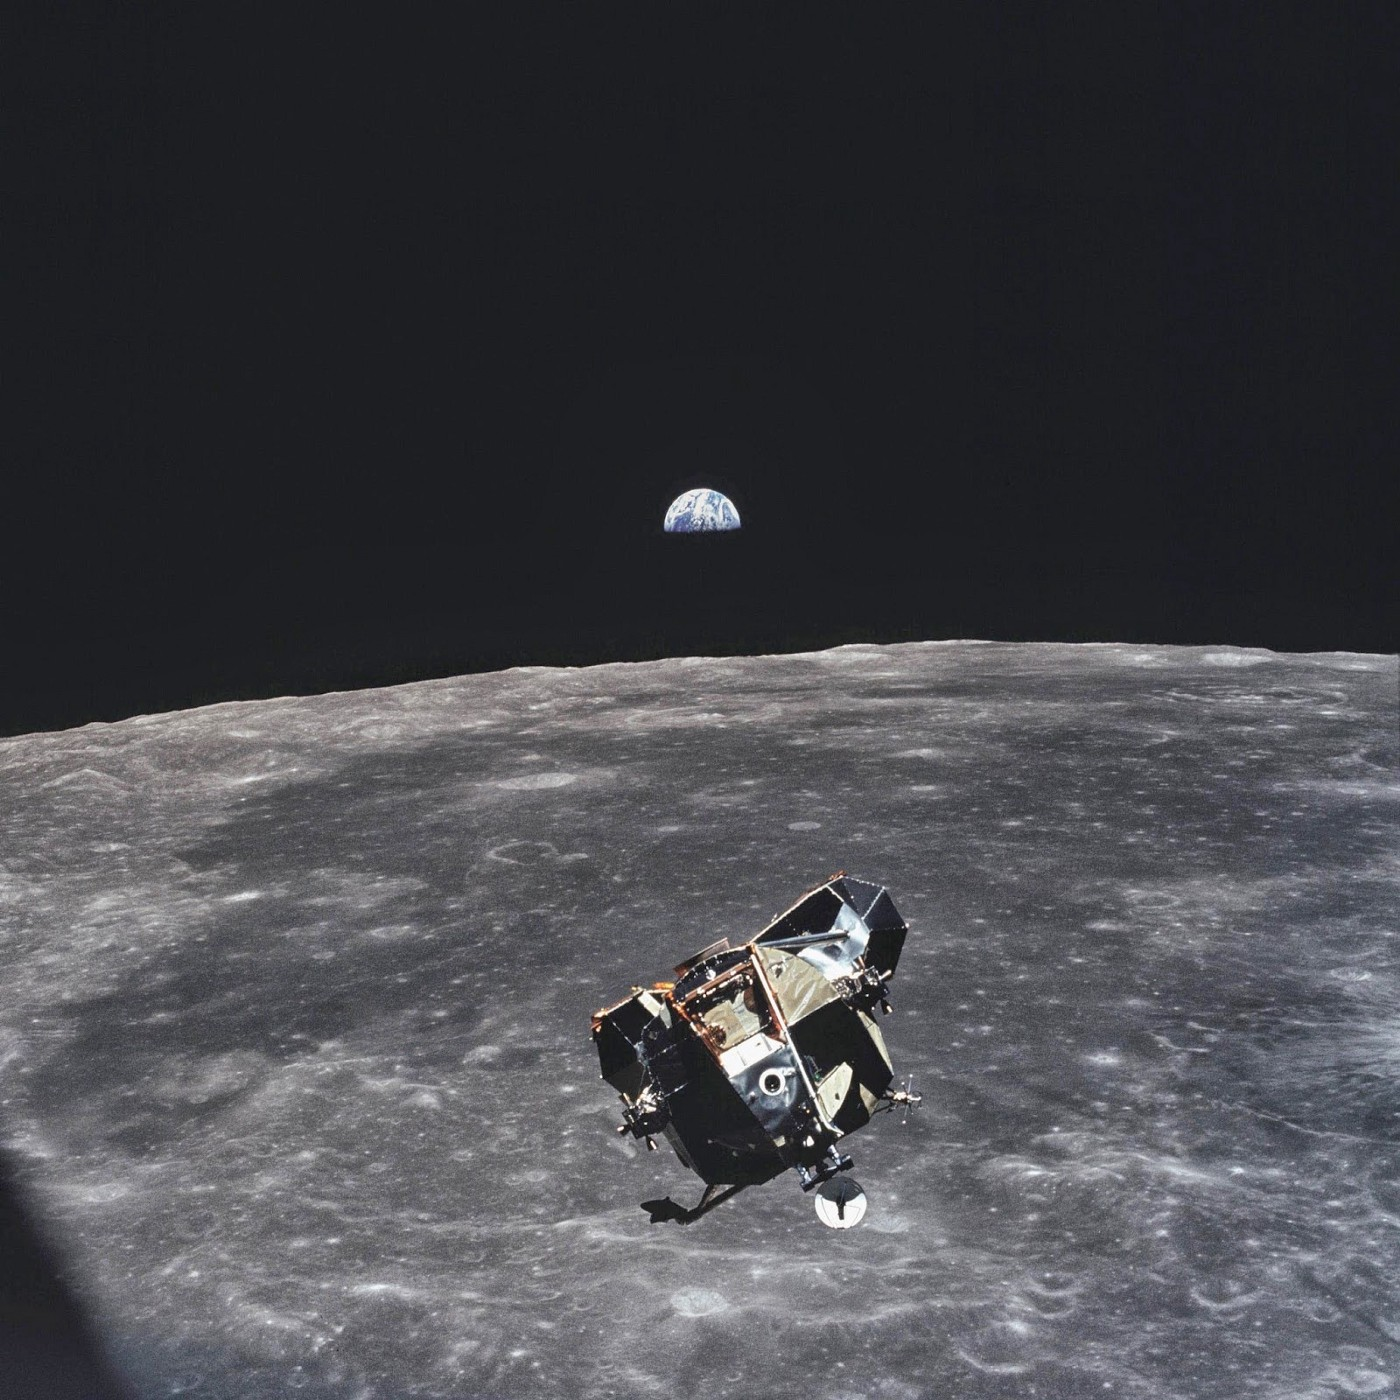 A surface of the moon with a space vehicle on it, and the Earth in the background.